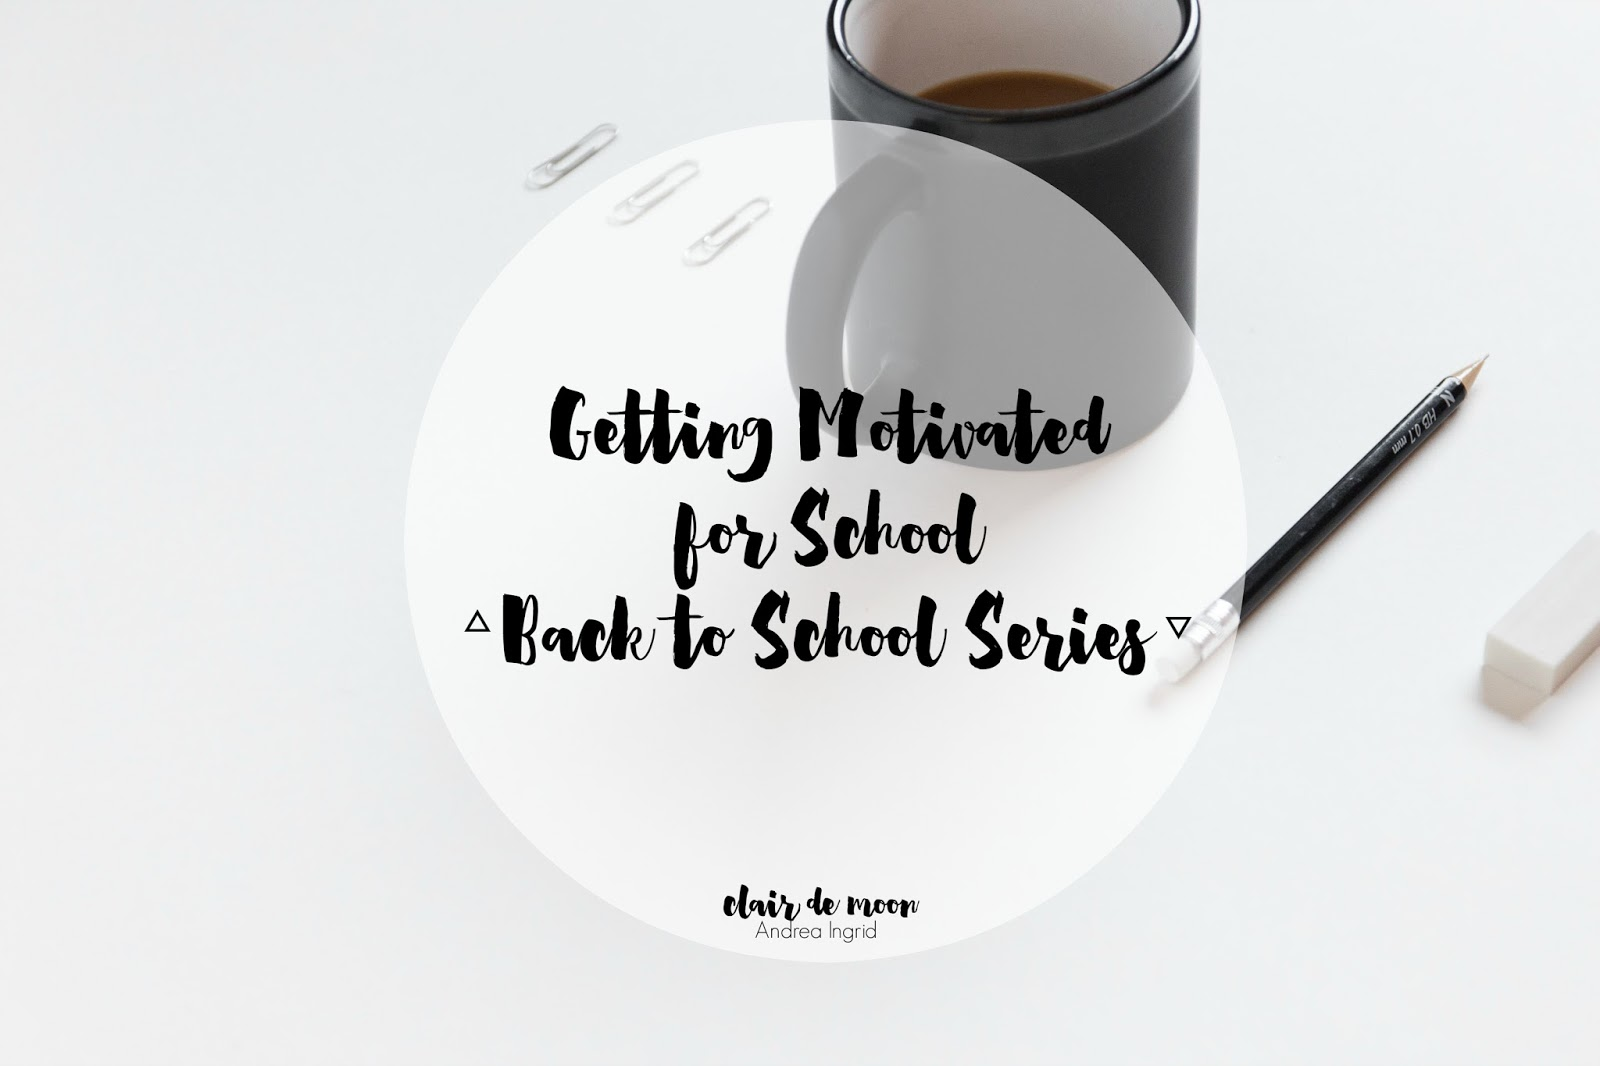 Back to School Series